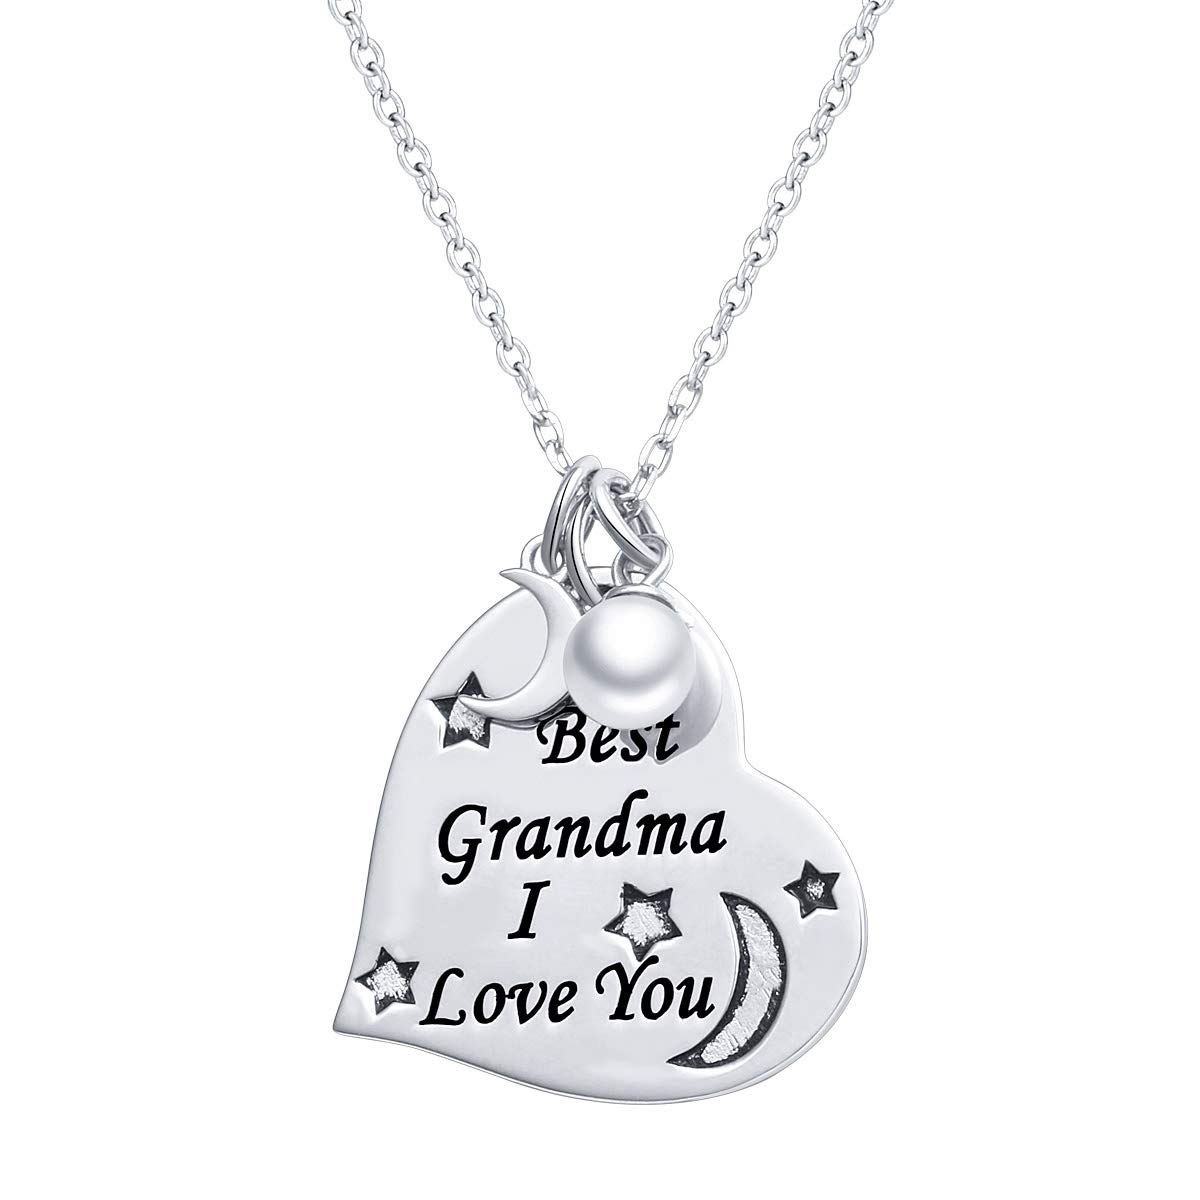 Birthday Gift 925 Sterling Silver Message Engraved Love Heart Pendant Charm Necklace, 18 inches Rolo Chain Harmonyball Jewelry